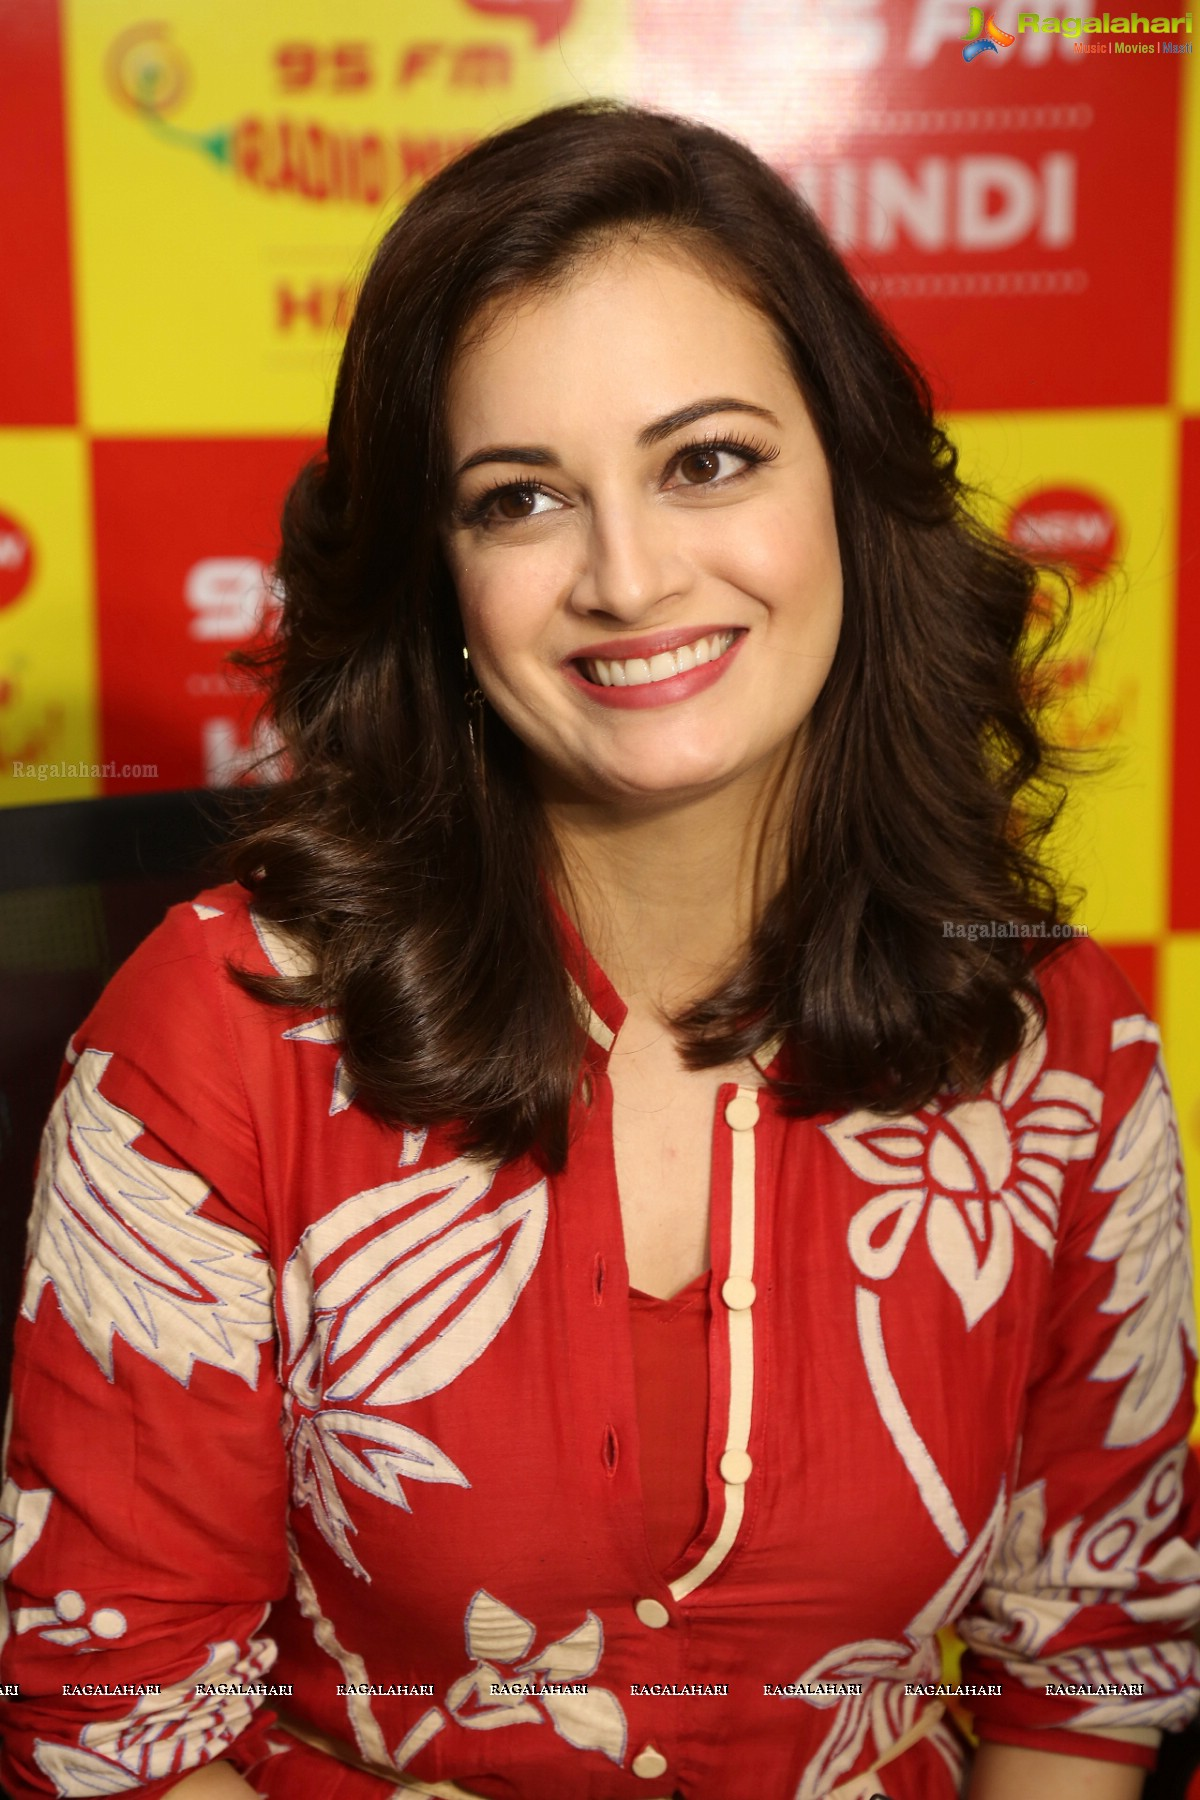 Dia Mirza nude (21 photo), Sexy, Cleavage, Twitter, butt 2017